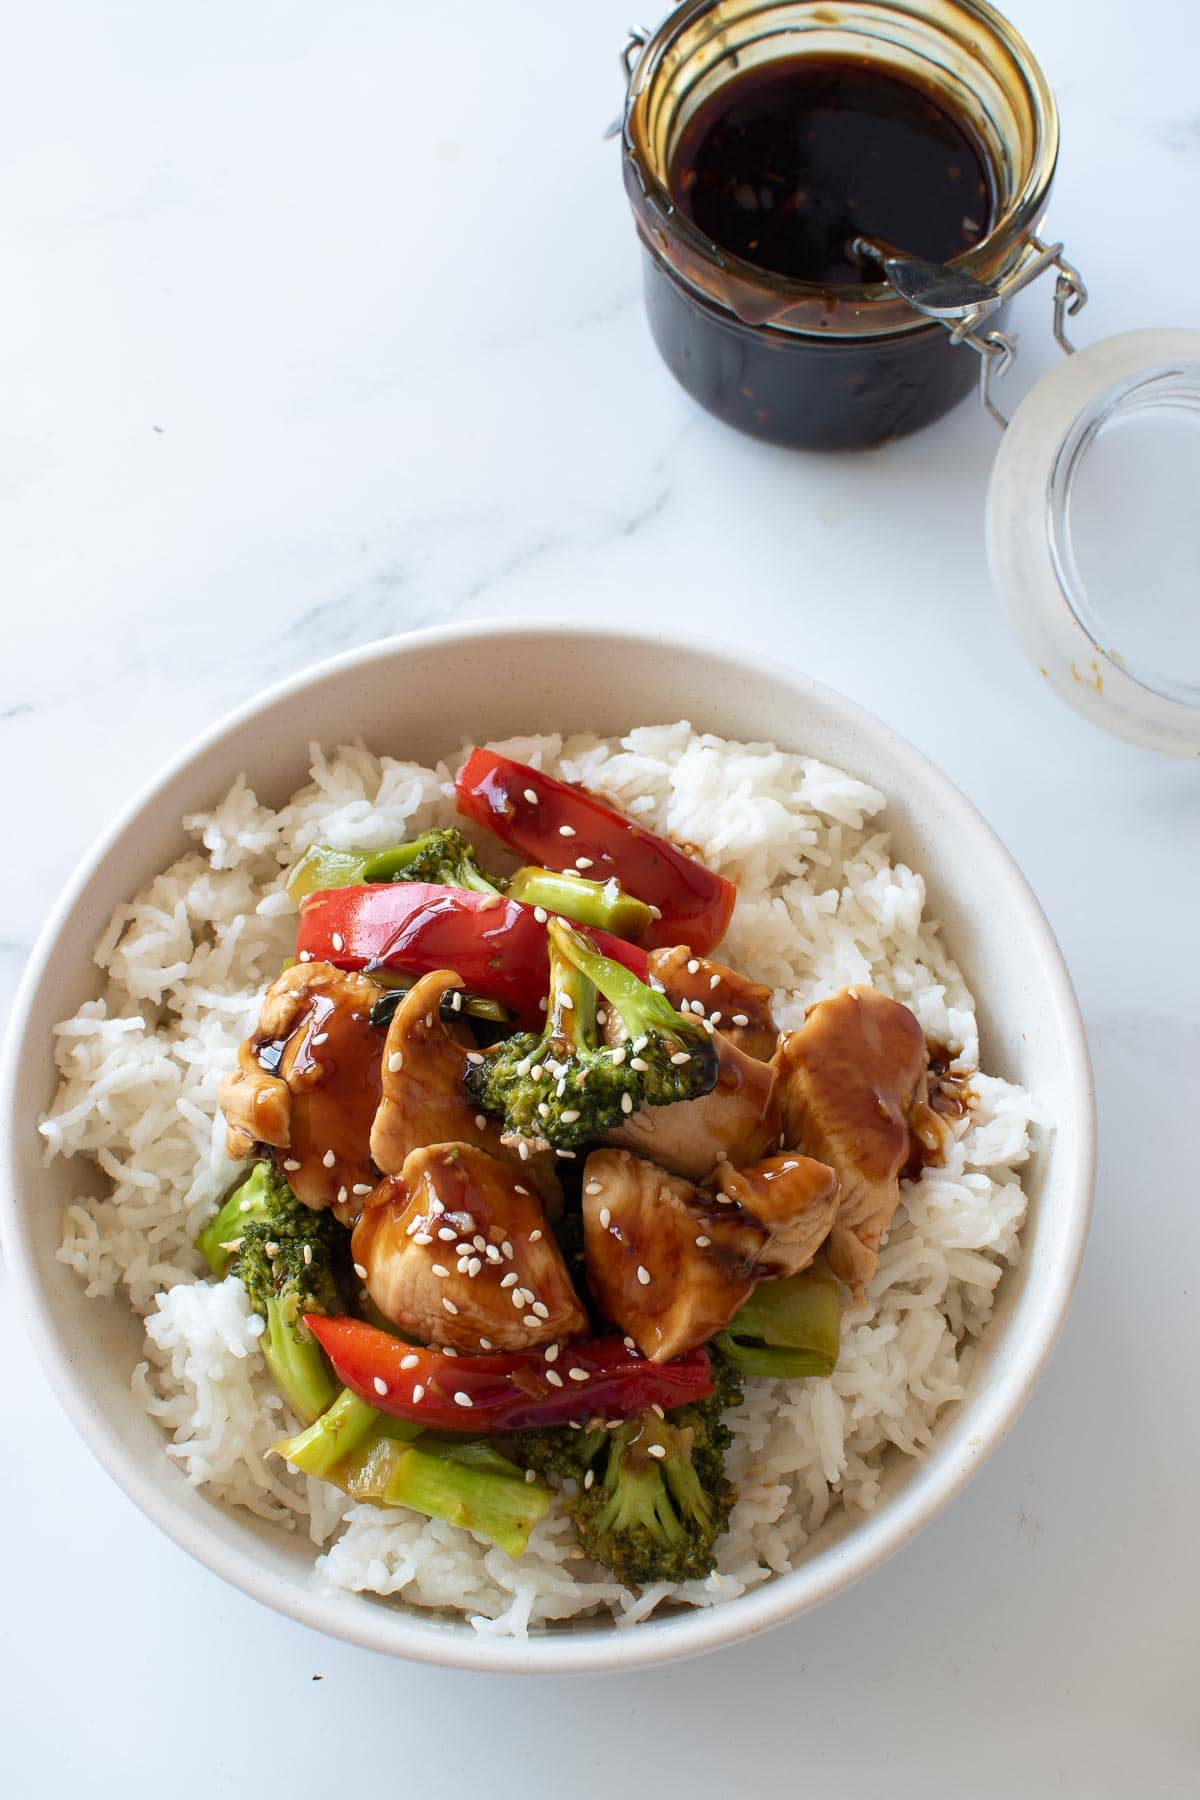 A bowl of rice and chicken stir fry, with a jar of teriyaki sauce in the background.